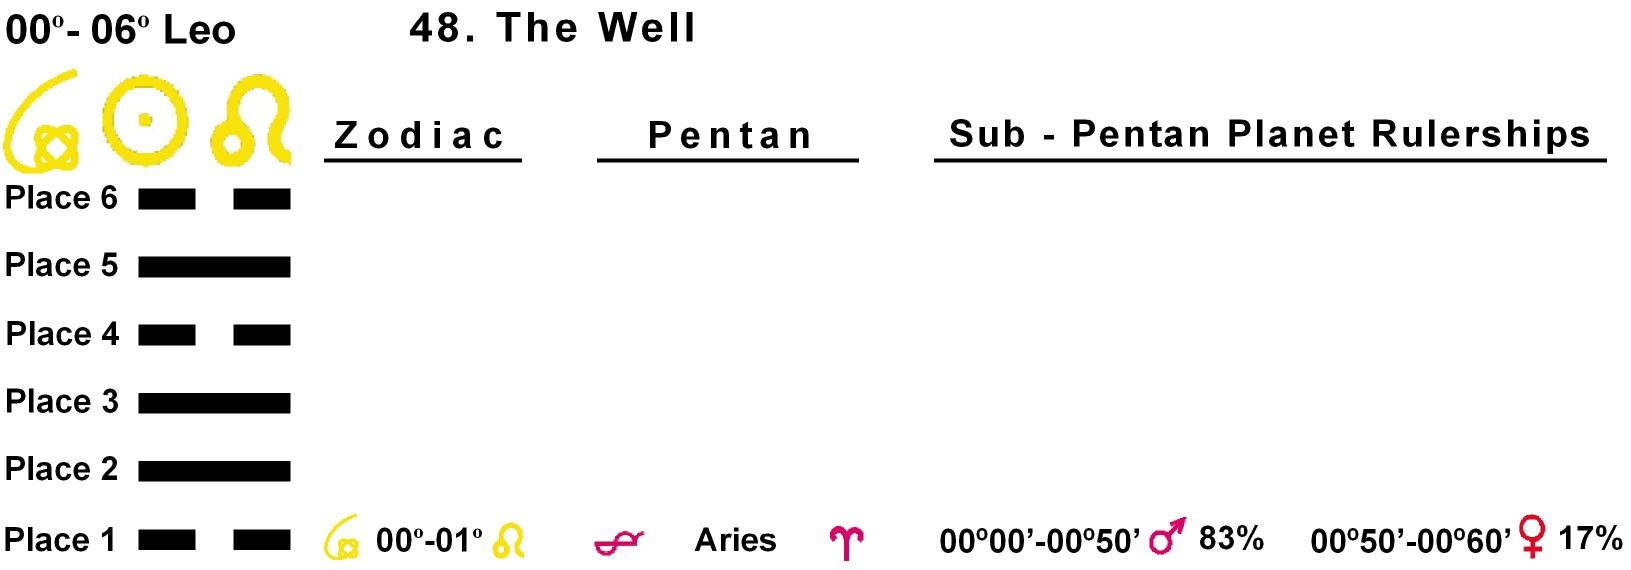 Pent-lines-05LE 00-01 Hx-48 The Well